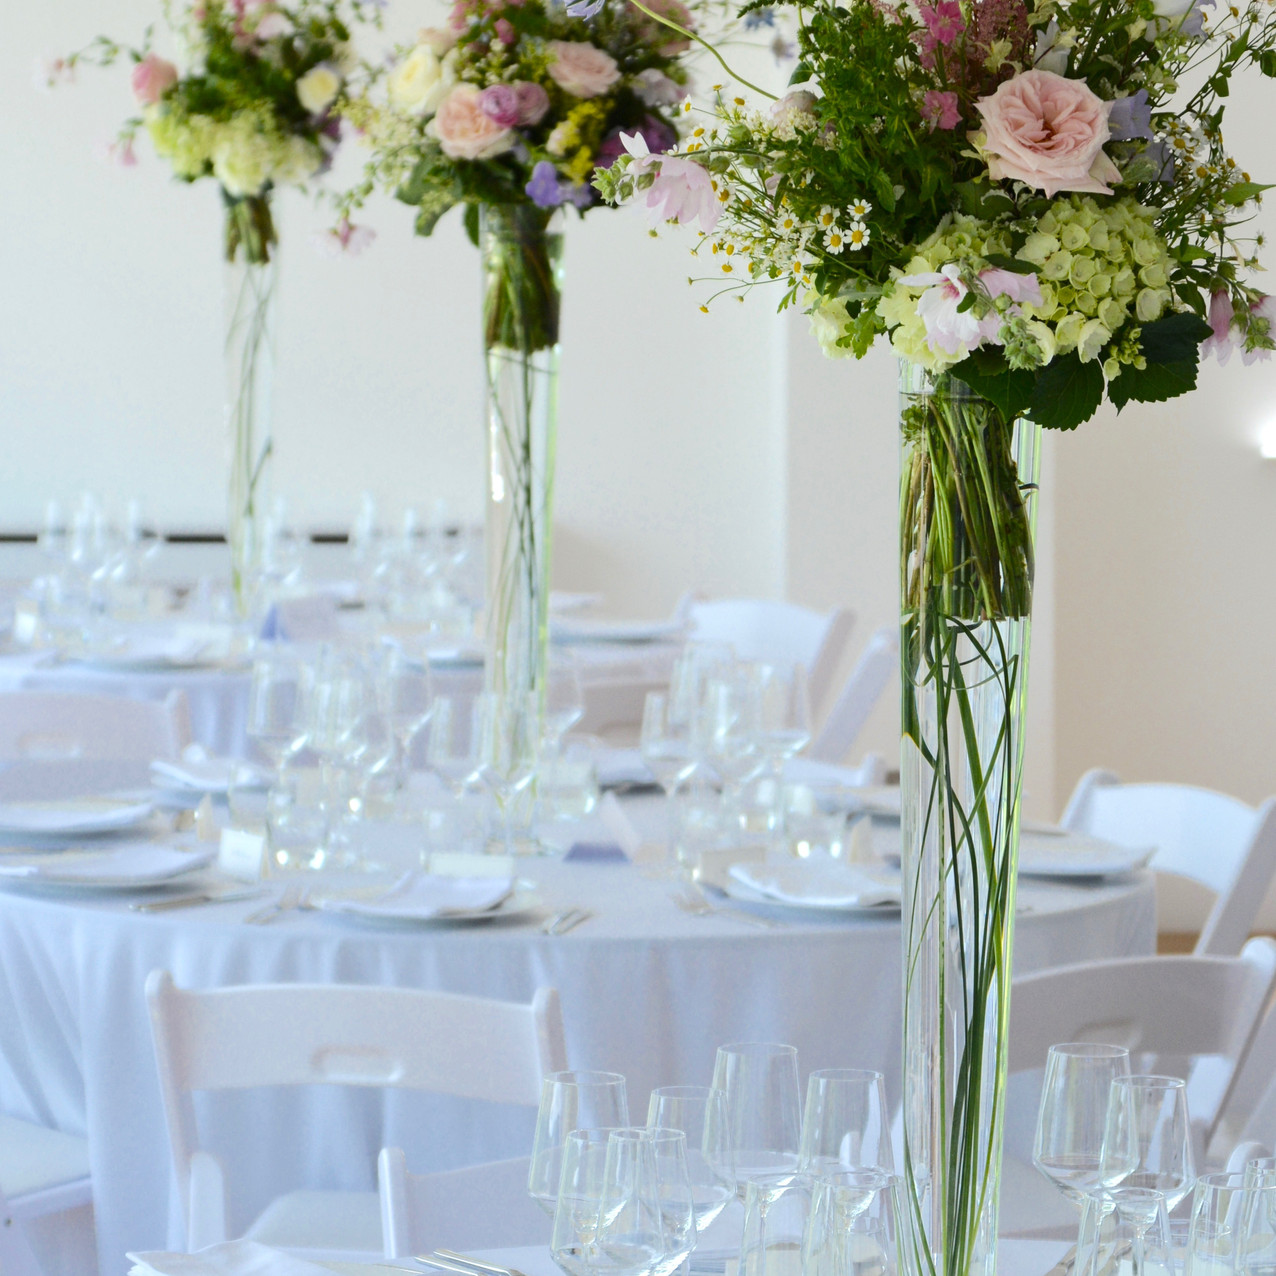 Tall vases with hand-tied bouquets of summer flowers for the guest tables